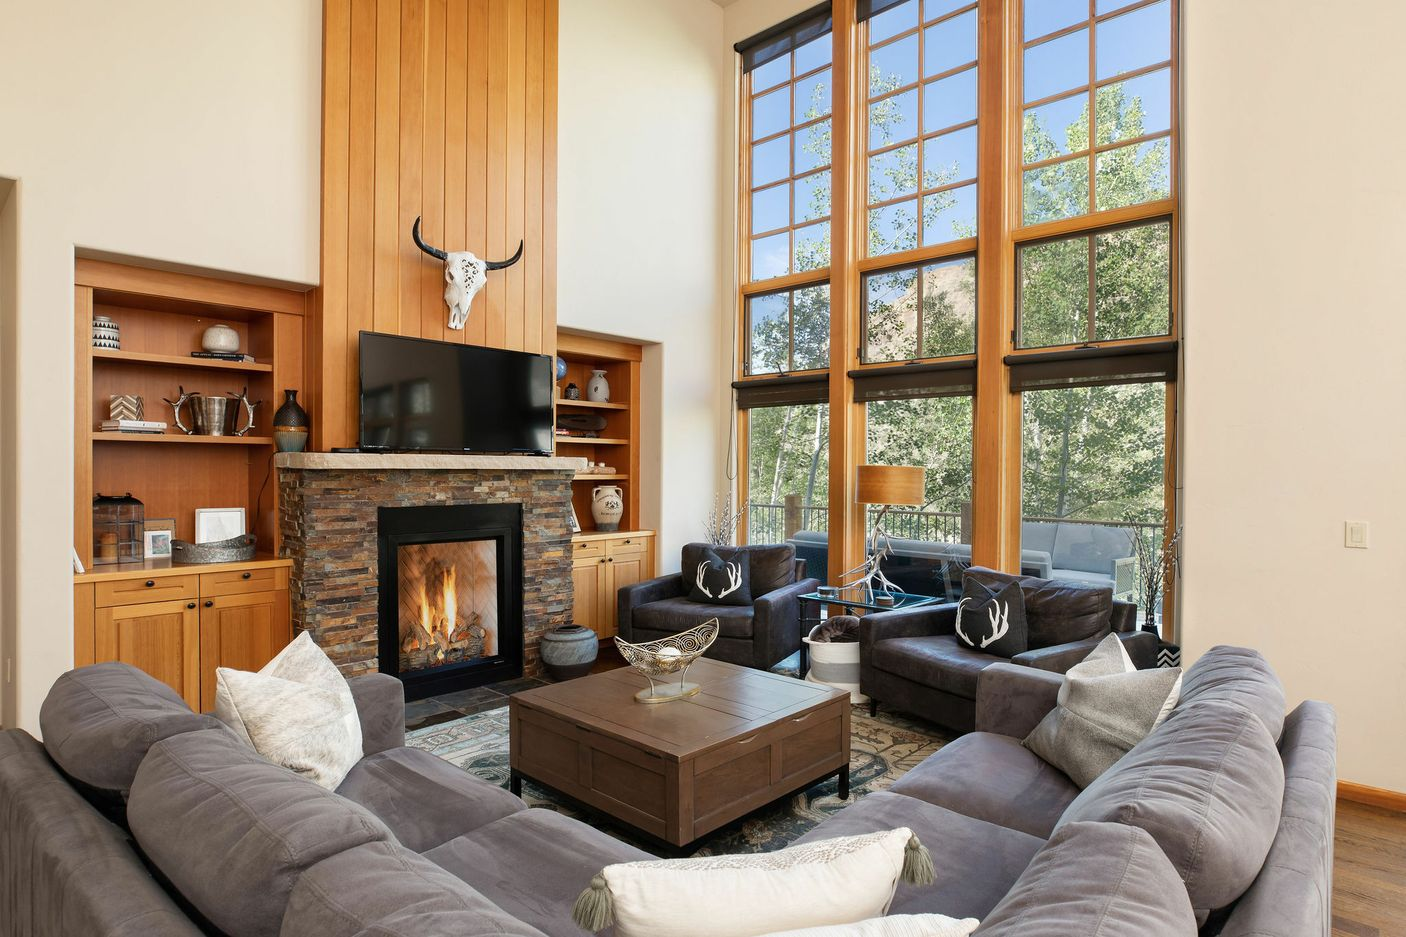 Living room shot of luxury mountain home.